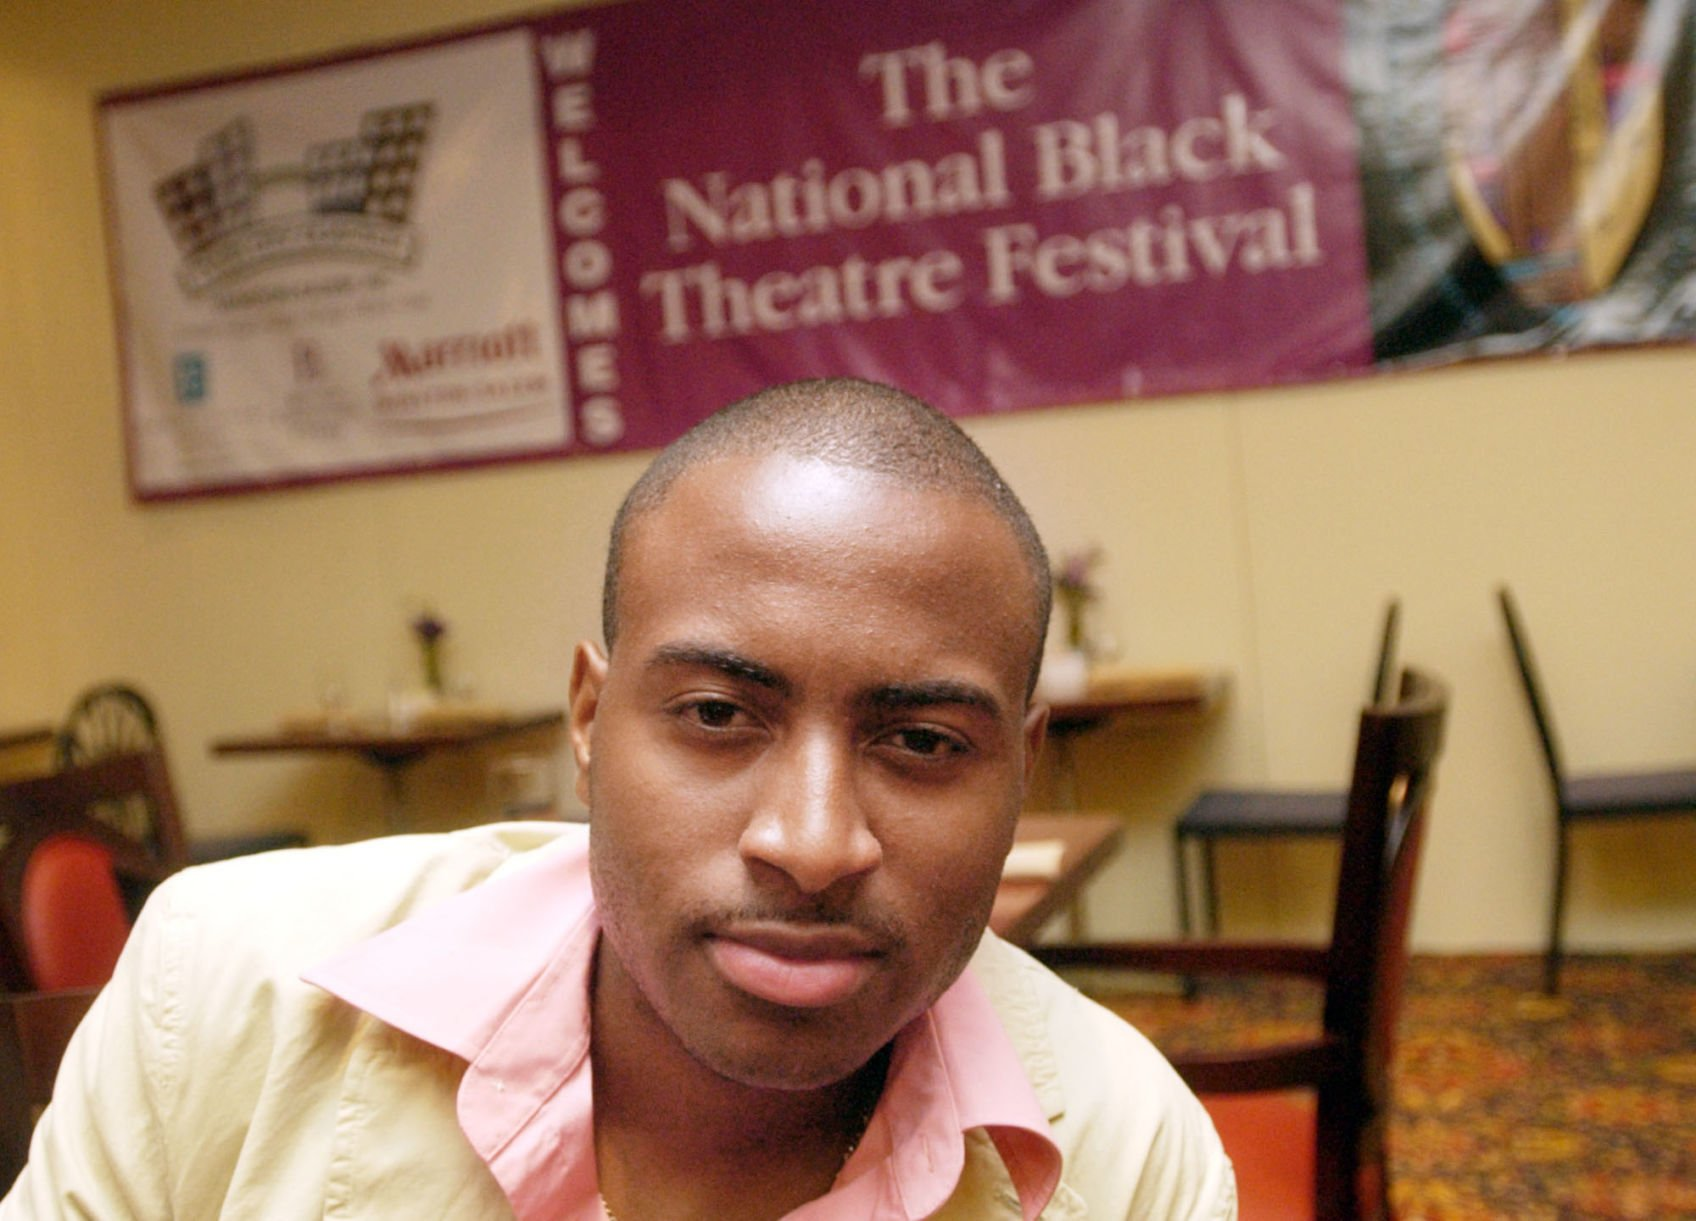 Actor one of few men to have breast cancer   Winston Salem Journal